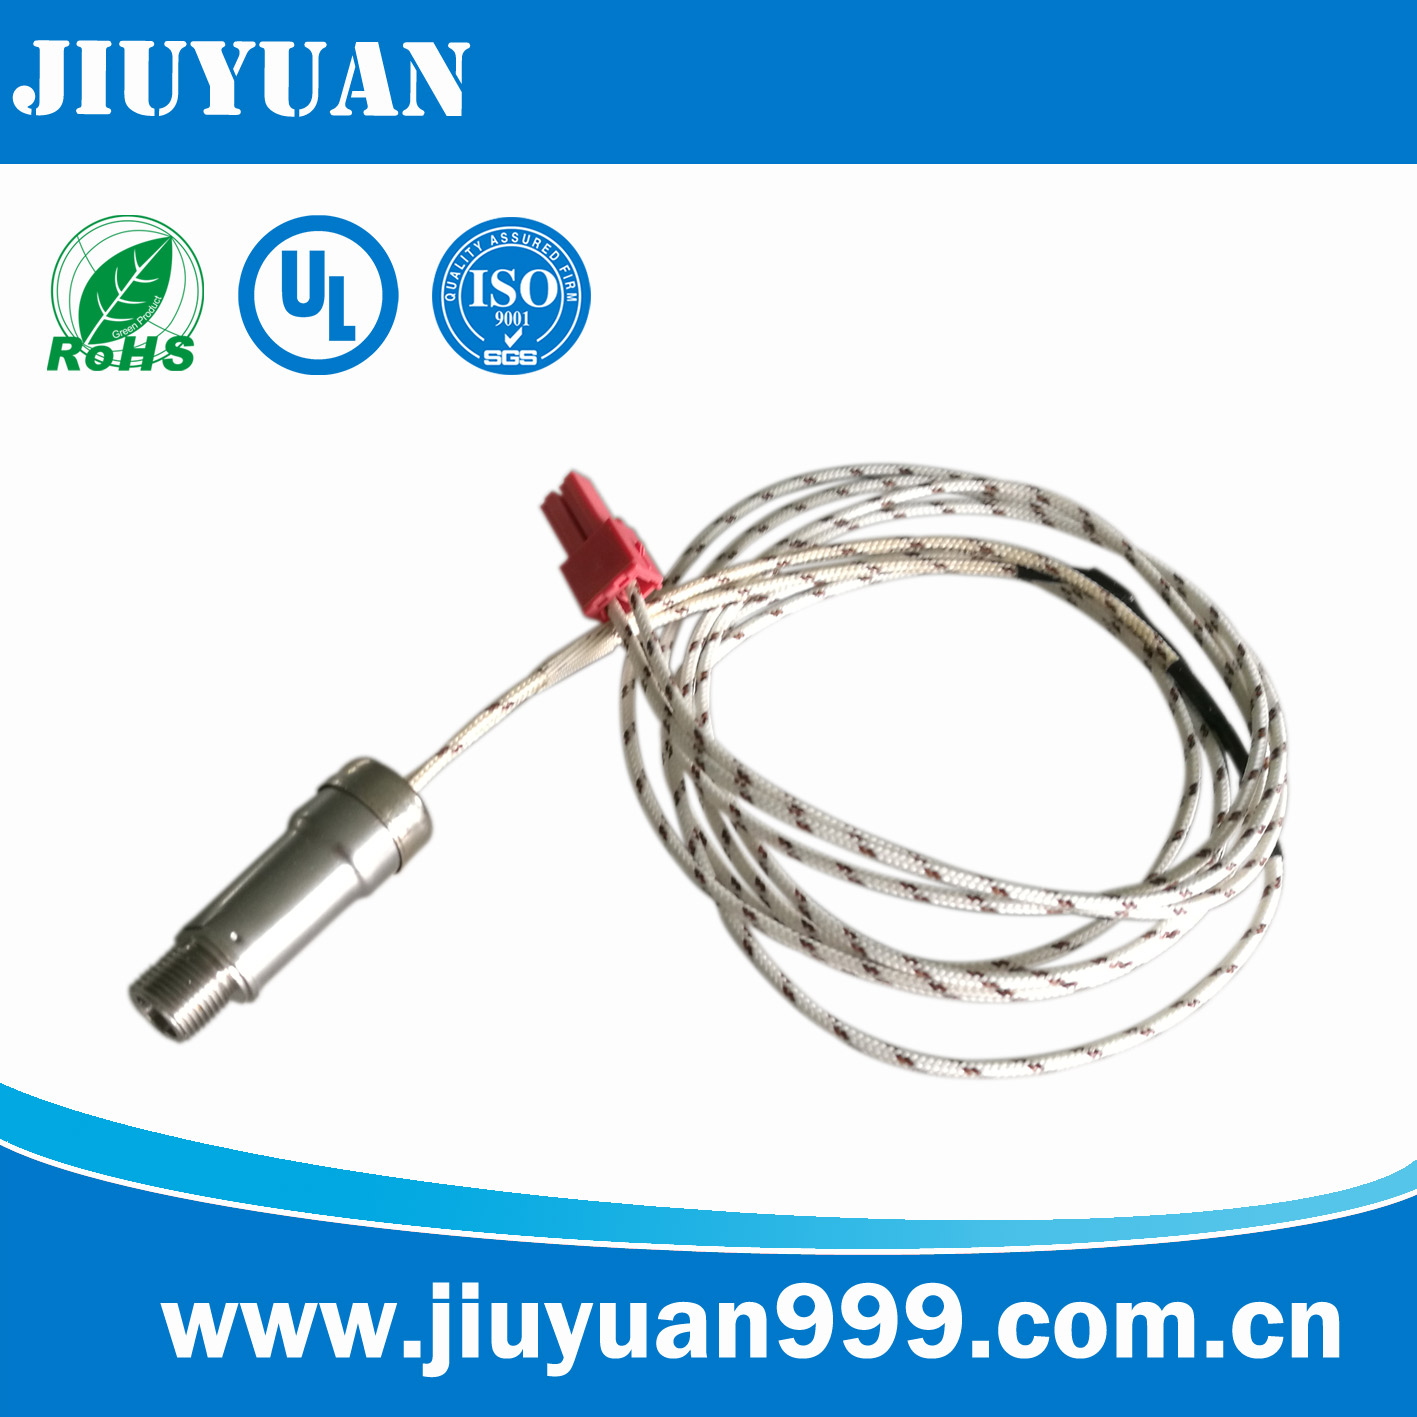 Temperature sensor receptacle / plug socket for oven / toaster / mircowave oven / bread machine